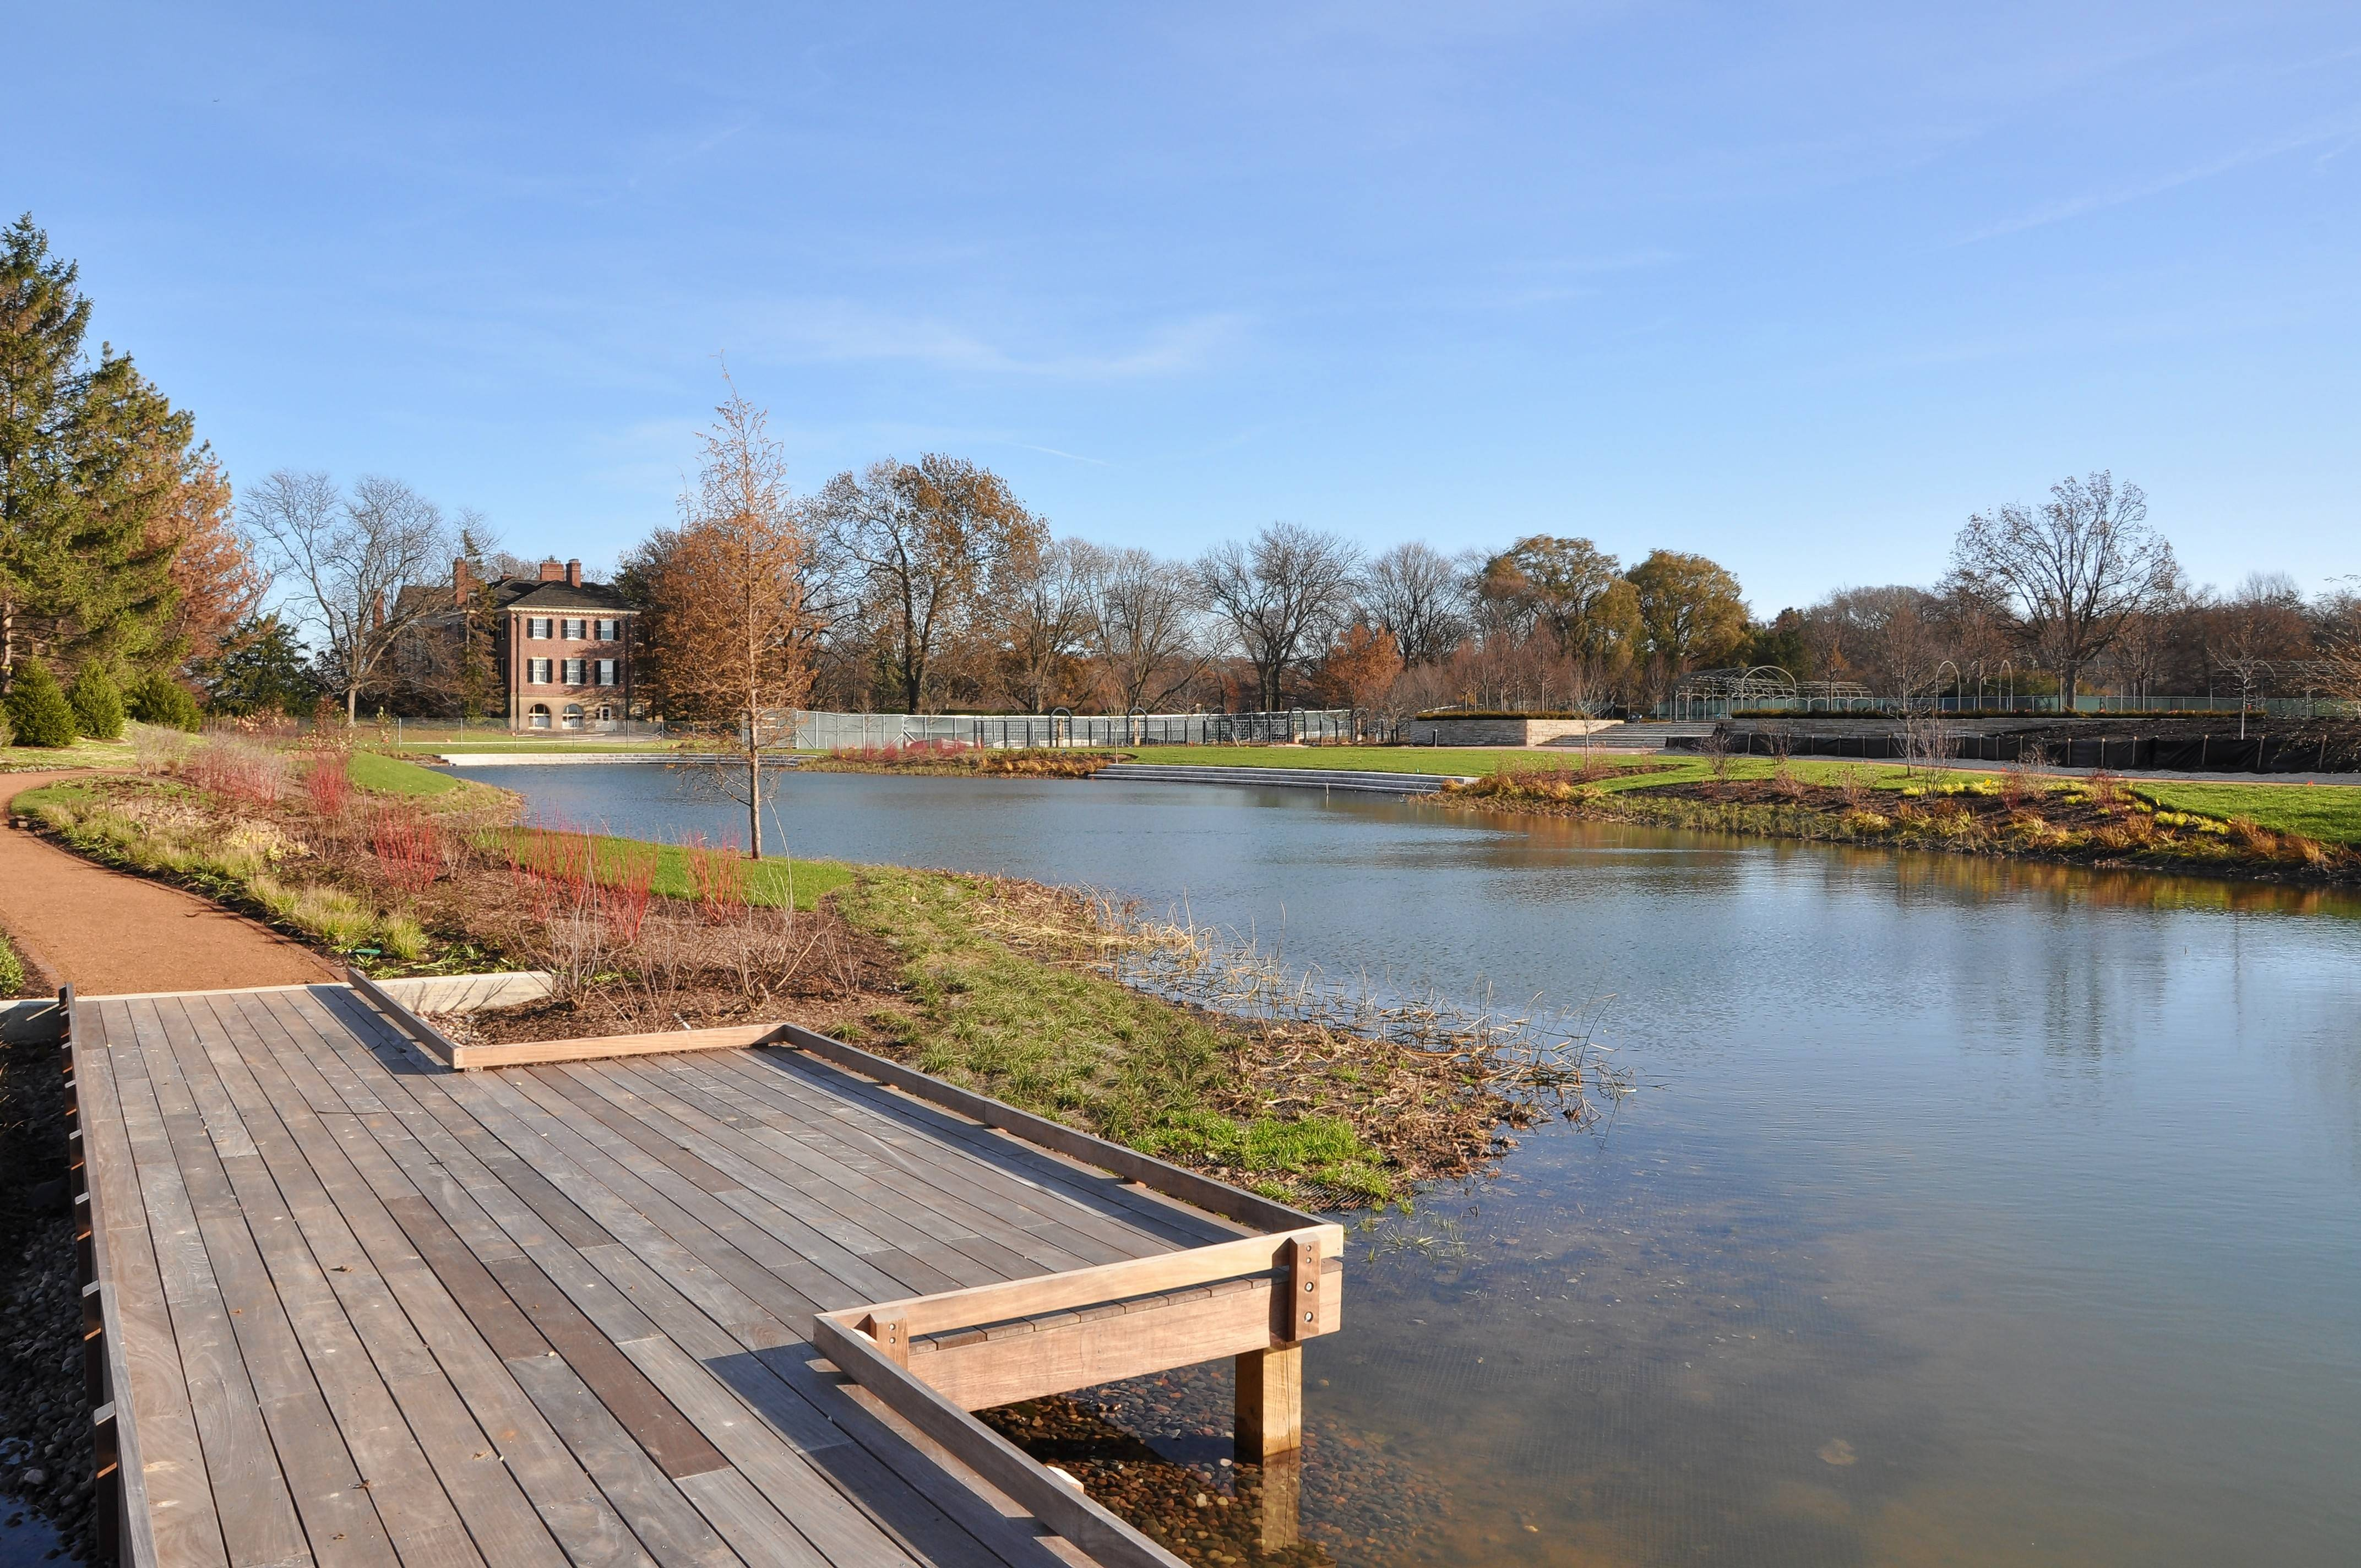 A new board walk and trails surround a pond near the historic mansion on the grounds of Cantigny Park.